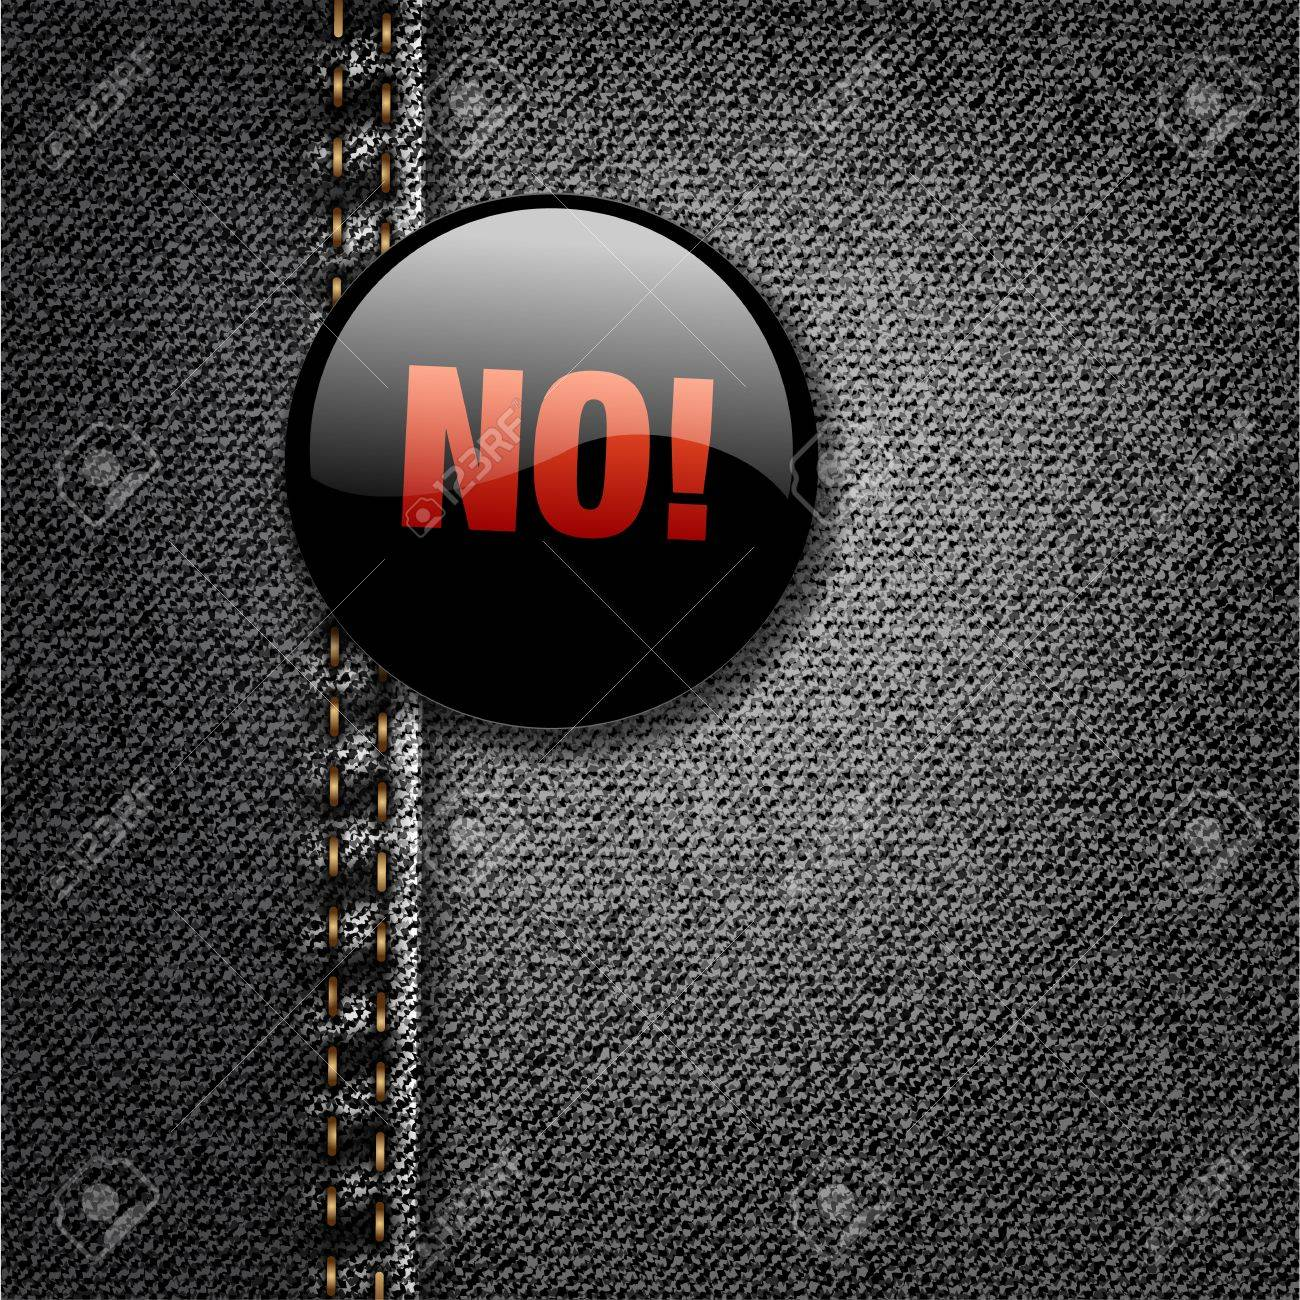 NO Word Dark Badge on Black Denim Jeans Fabric Texture Stock Vector - 17584110